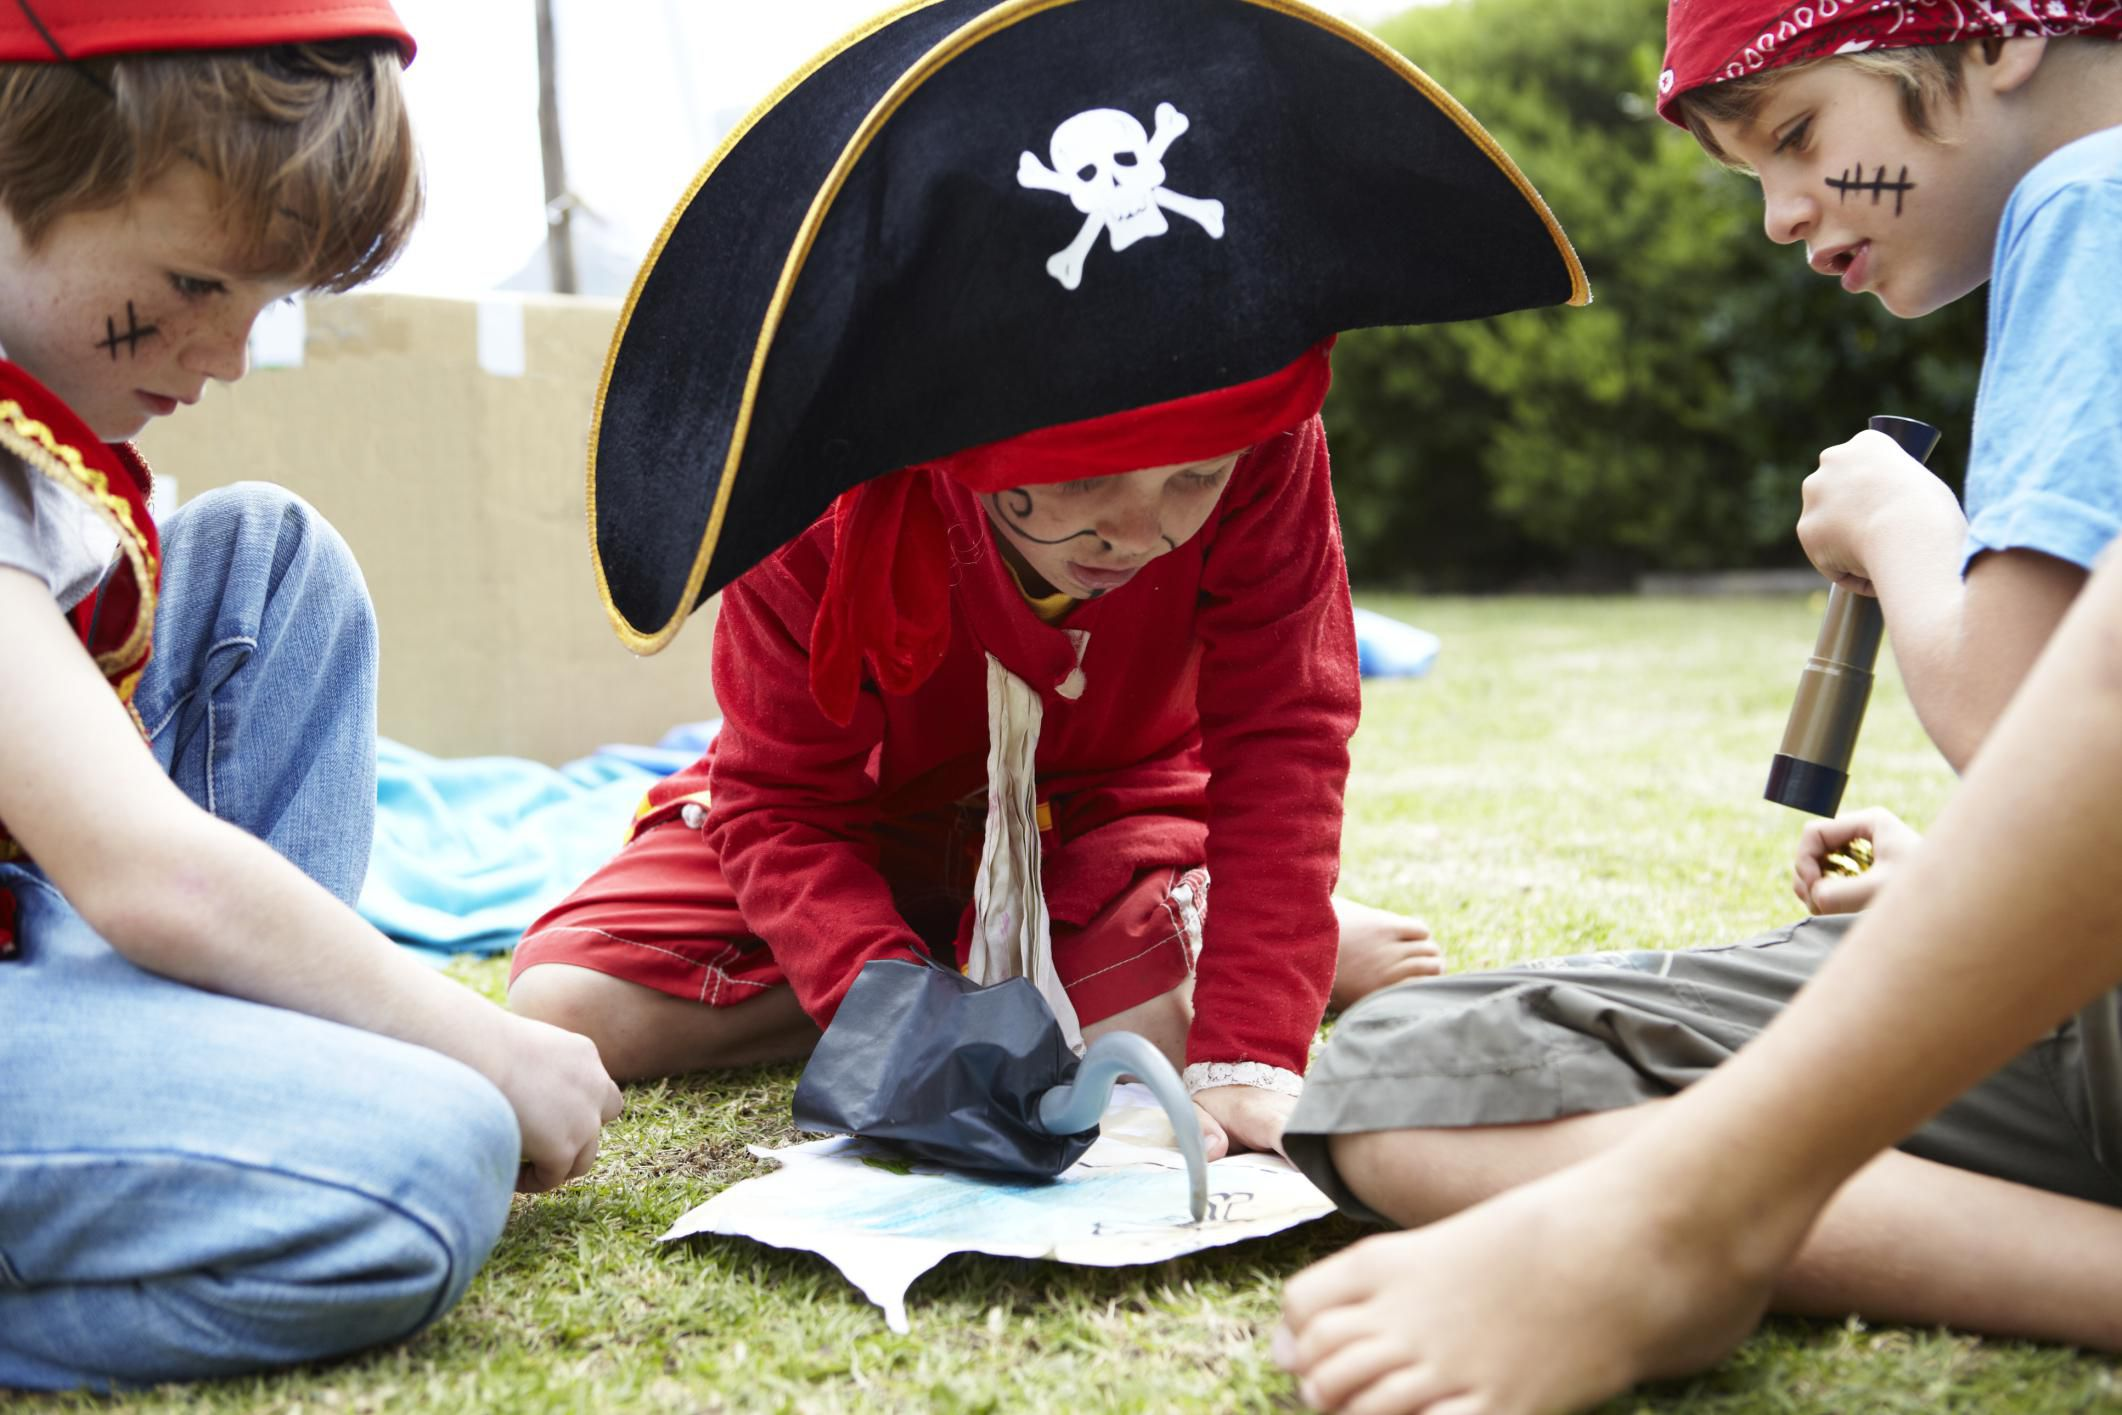 Pirate-Themed Party Game Ideas for Kids - photo#45